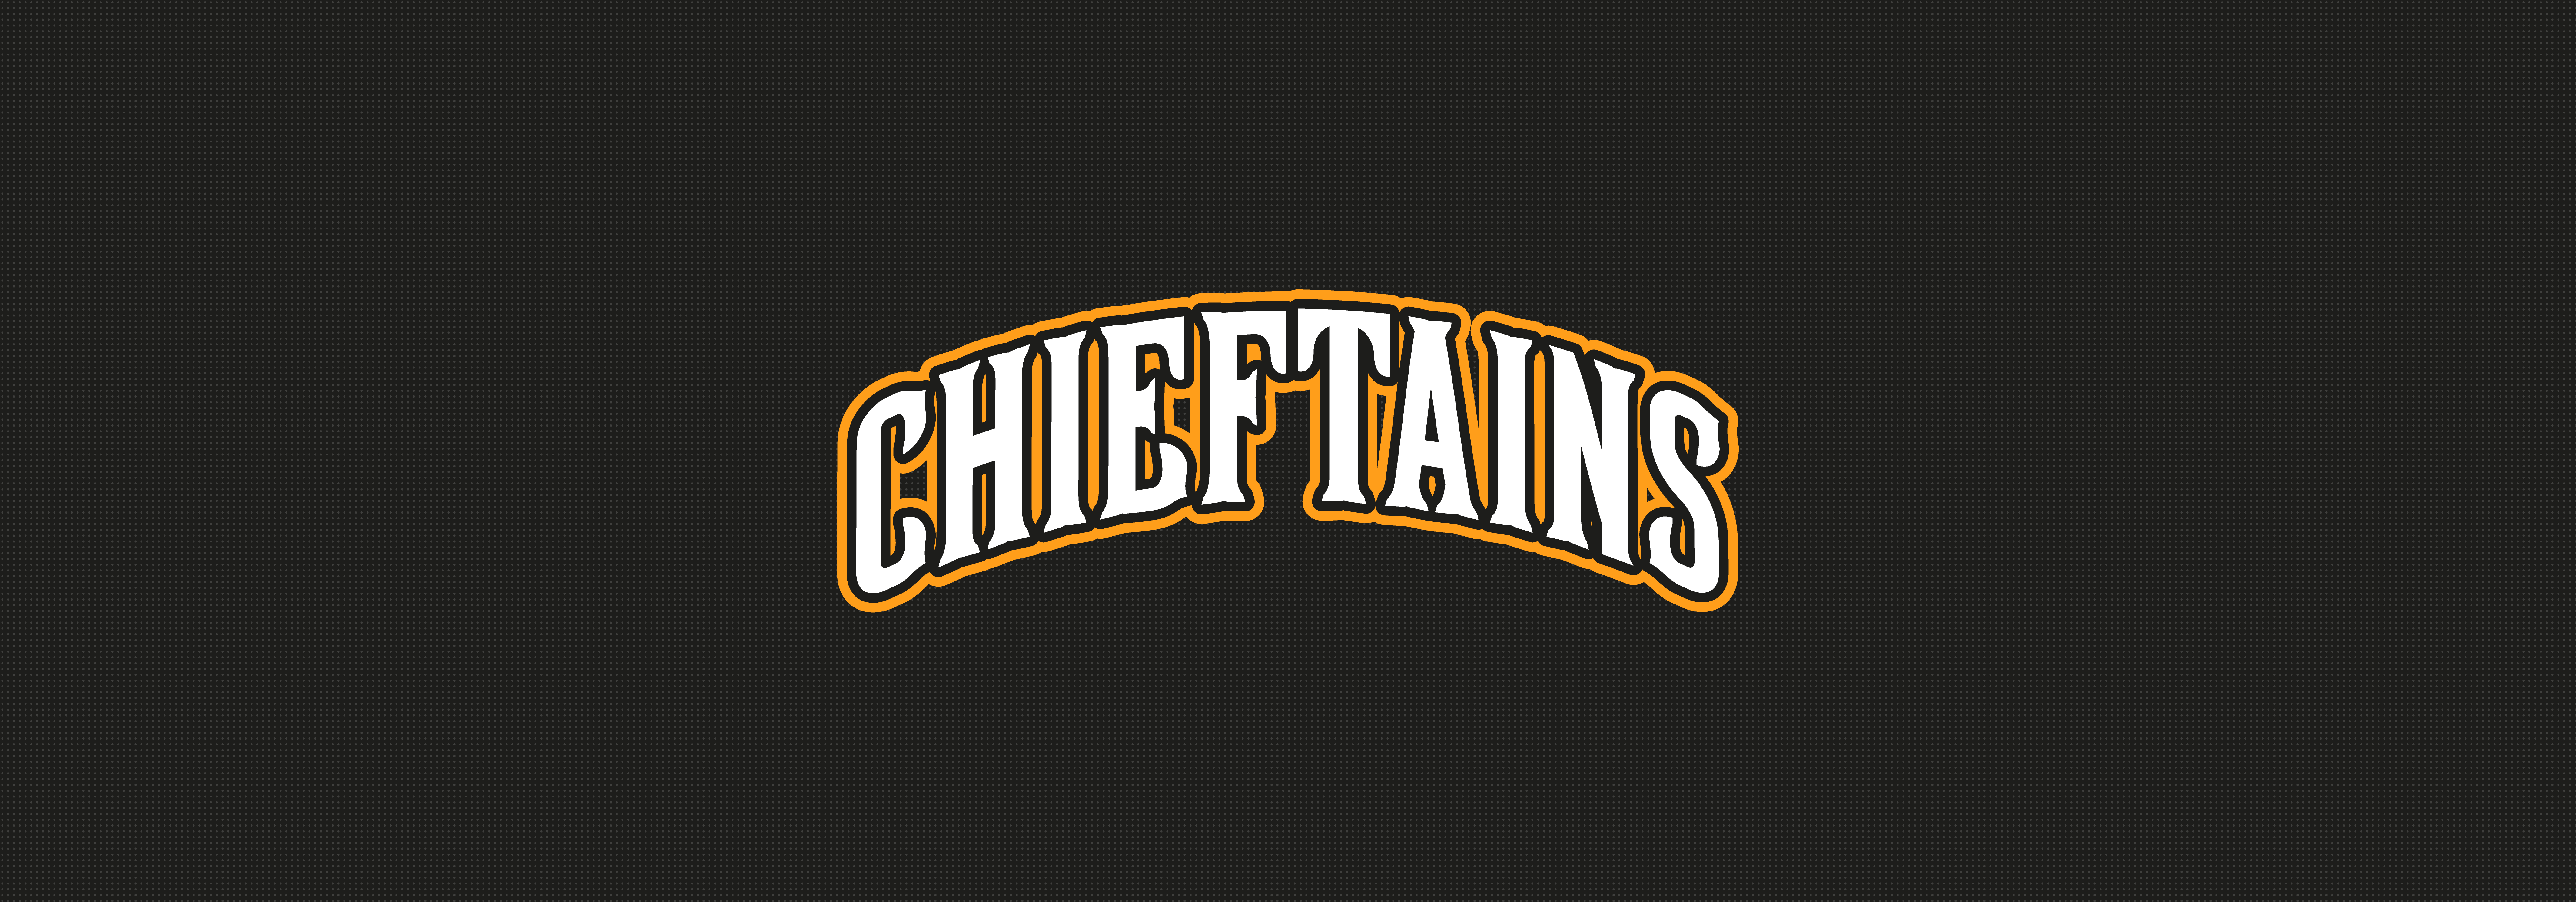 Chelmsford Chieftains Away Jersey